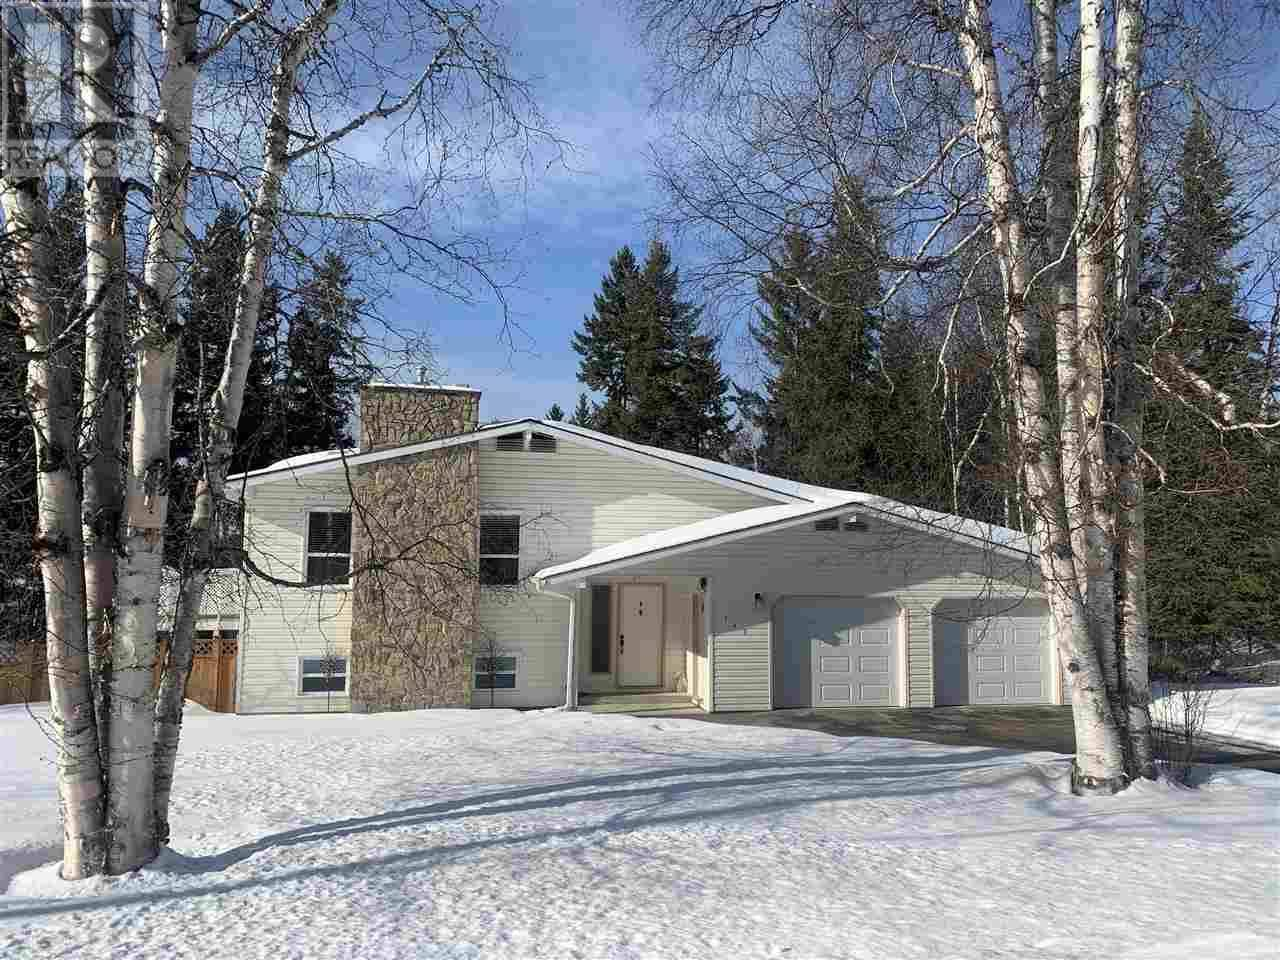 House for sale at 149 Enemark Rd S Quesnel British Columbia - MLS: R2436090